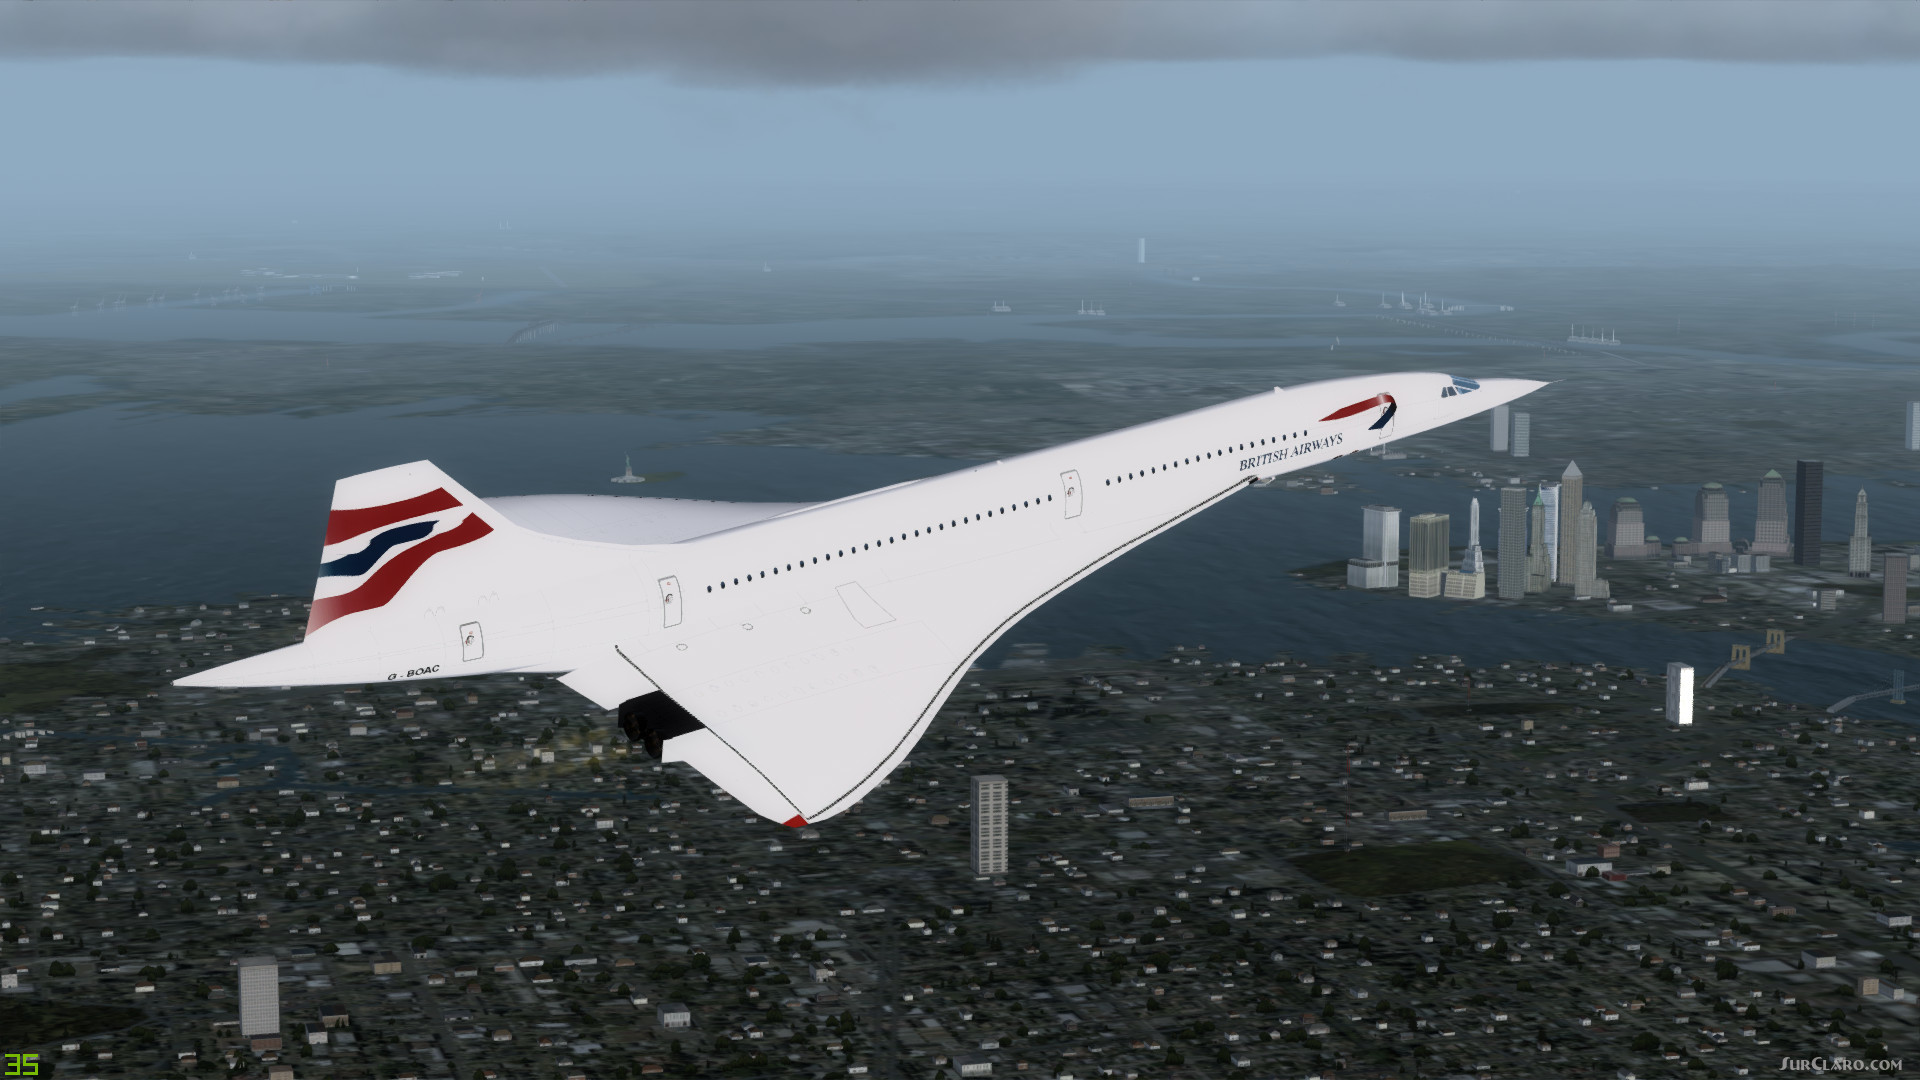 FSX Concorde Aircraft With Virtual Cockpit